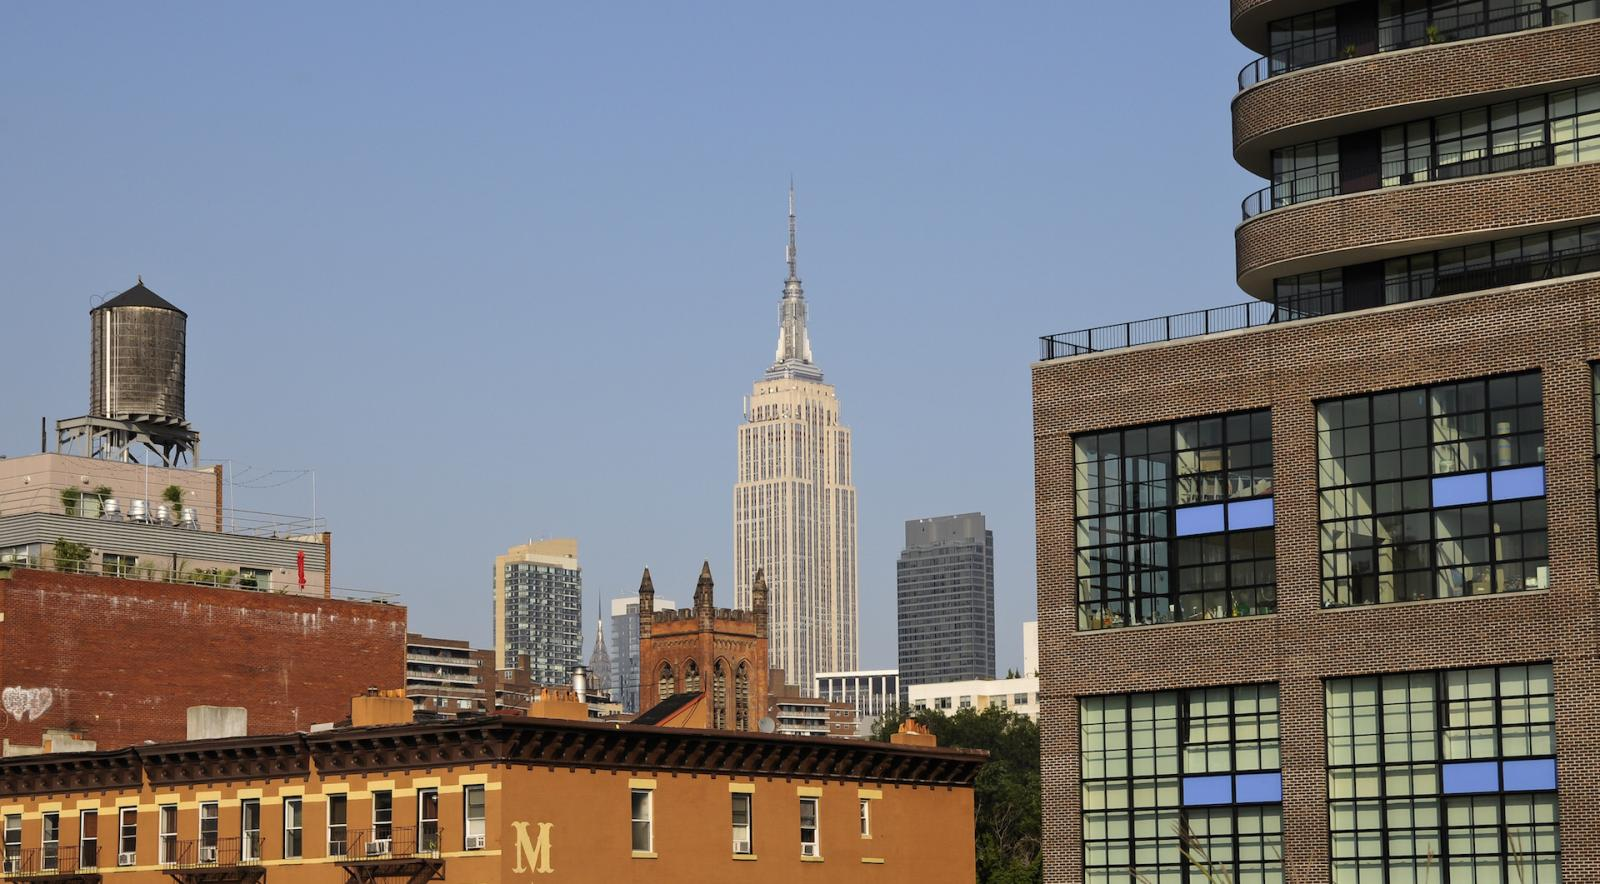 Vista del Empire State desde el High Line Park en el Meatpacking District